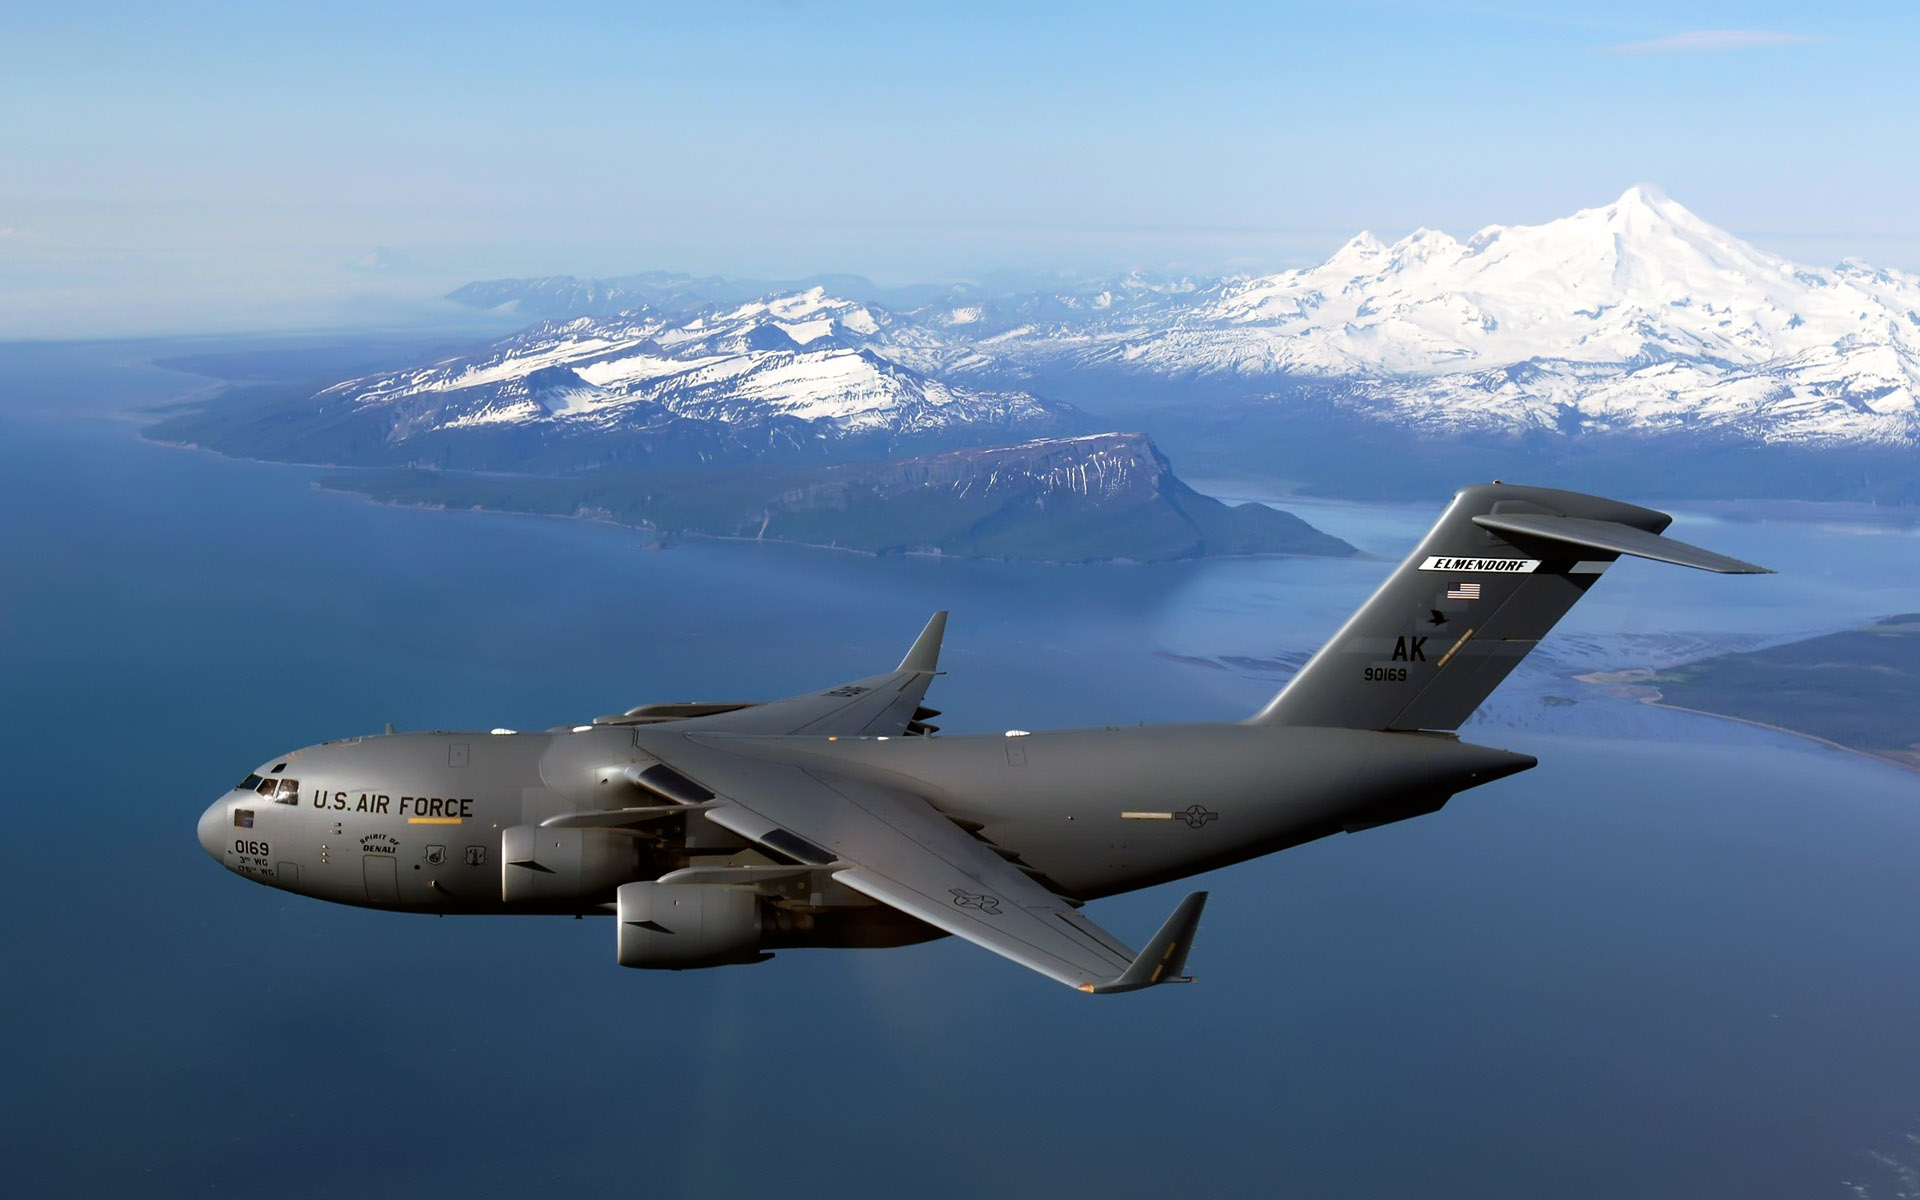 C 17 Globemaster Iii Over Alaska Wallpaper Details and Download Free